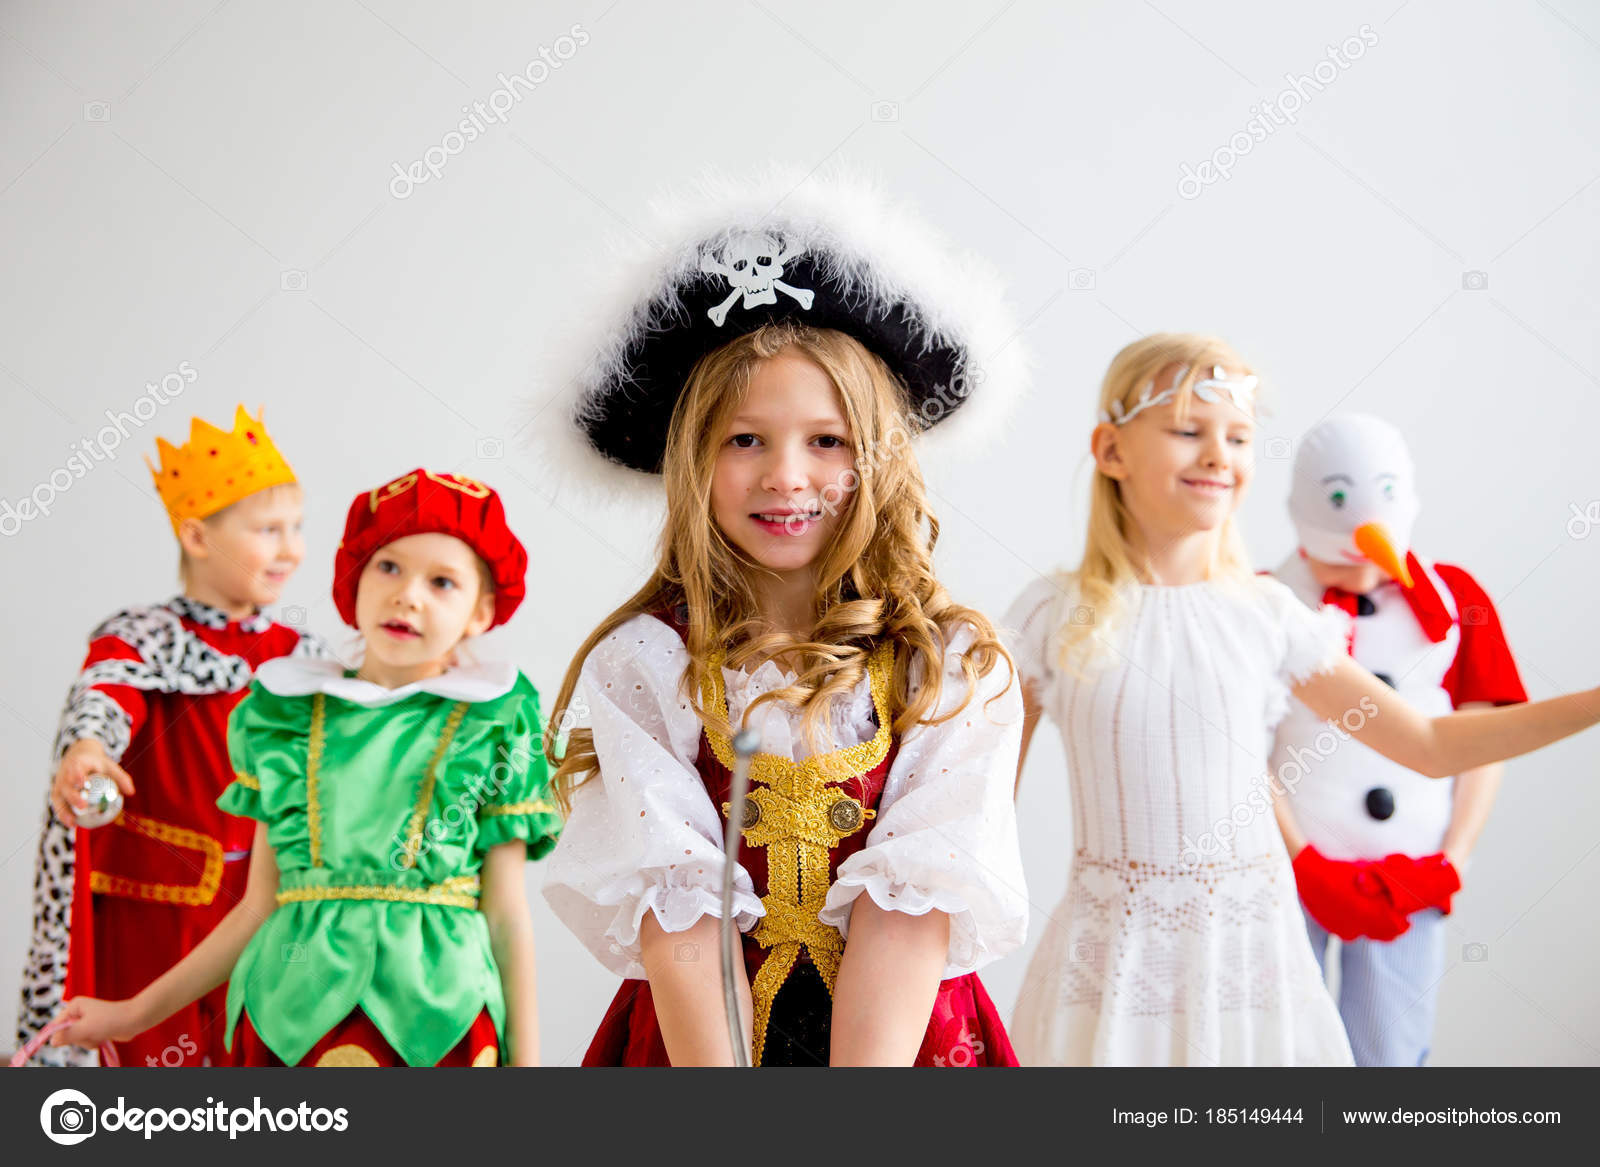 Kinder Kostüm party — Stockfoto © Lenanichizhenova #185149444